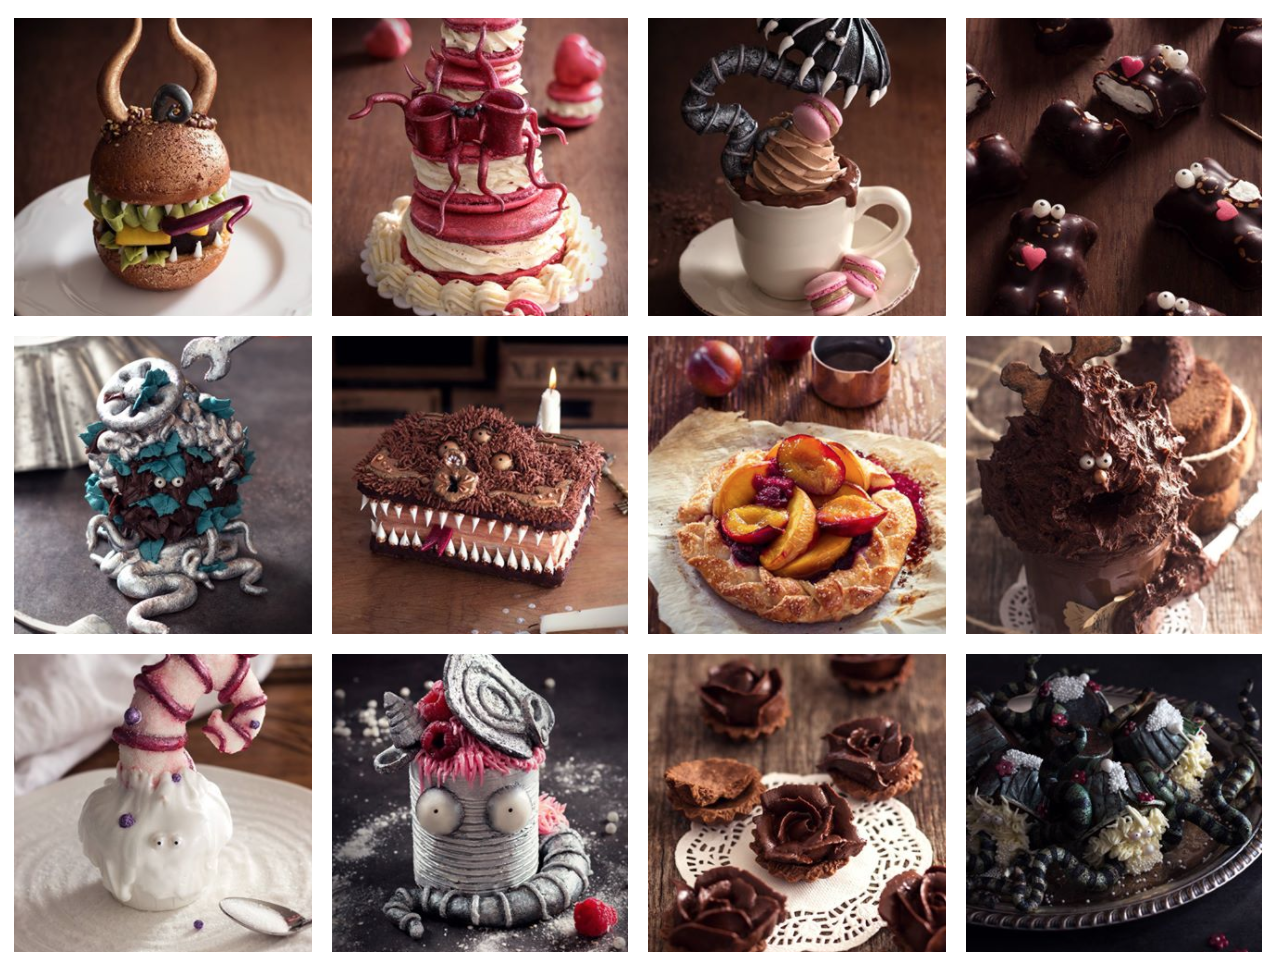 A French Pastry Artist